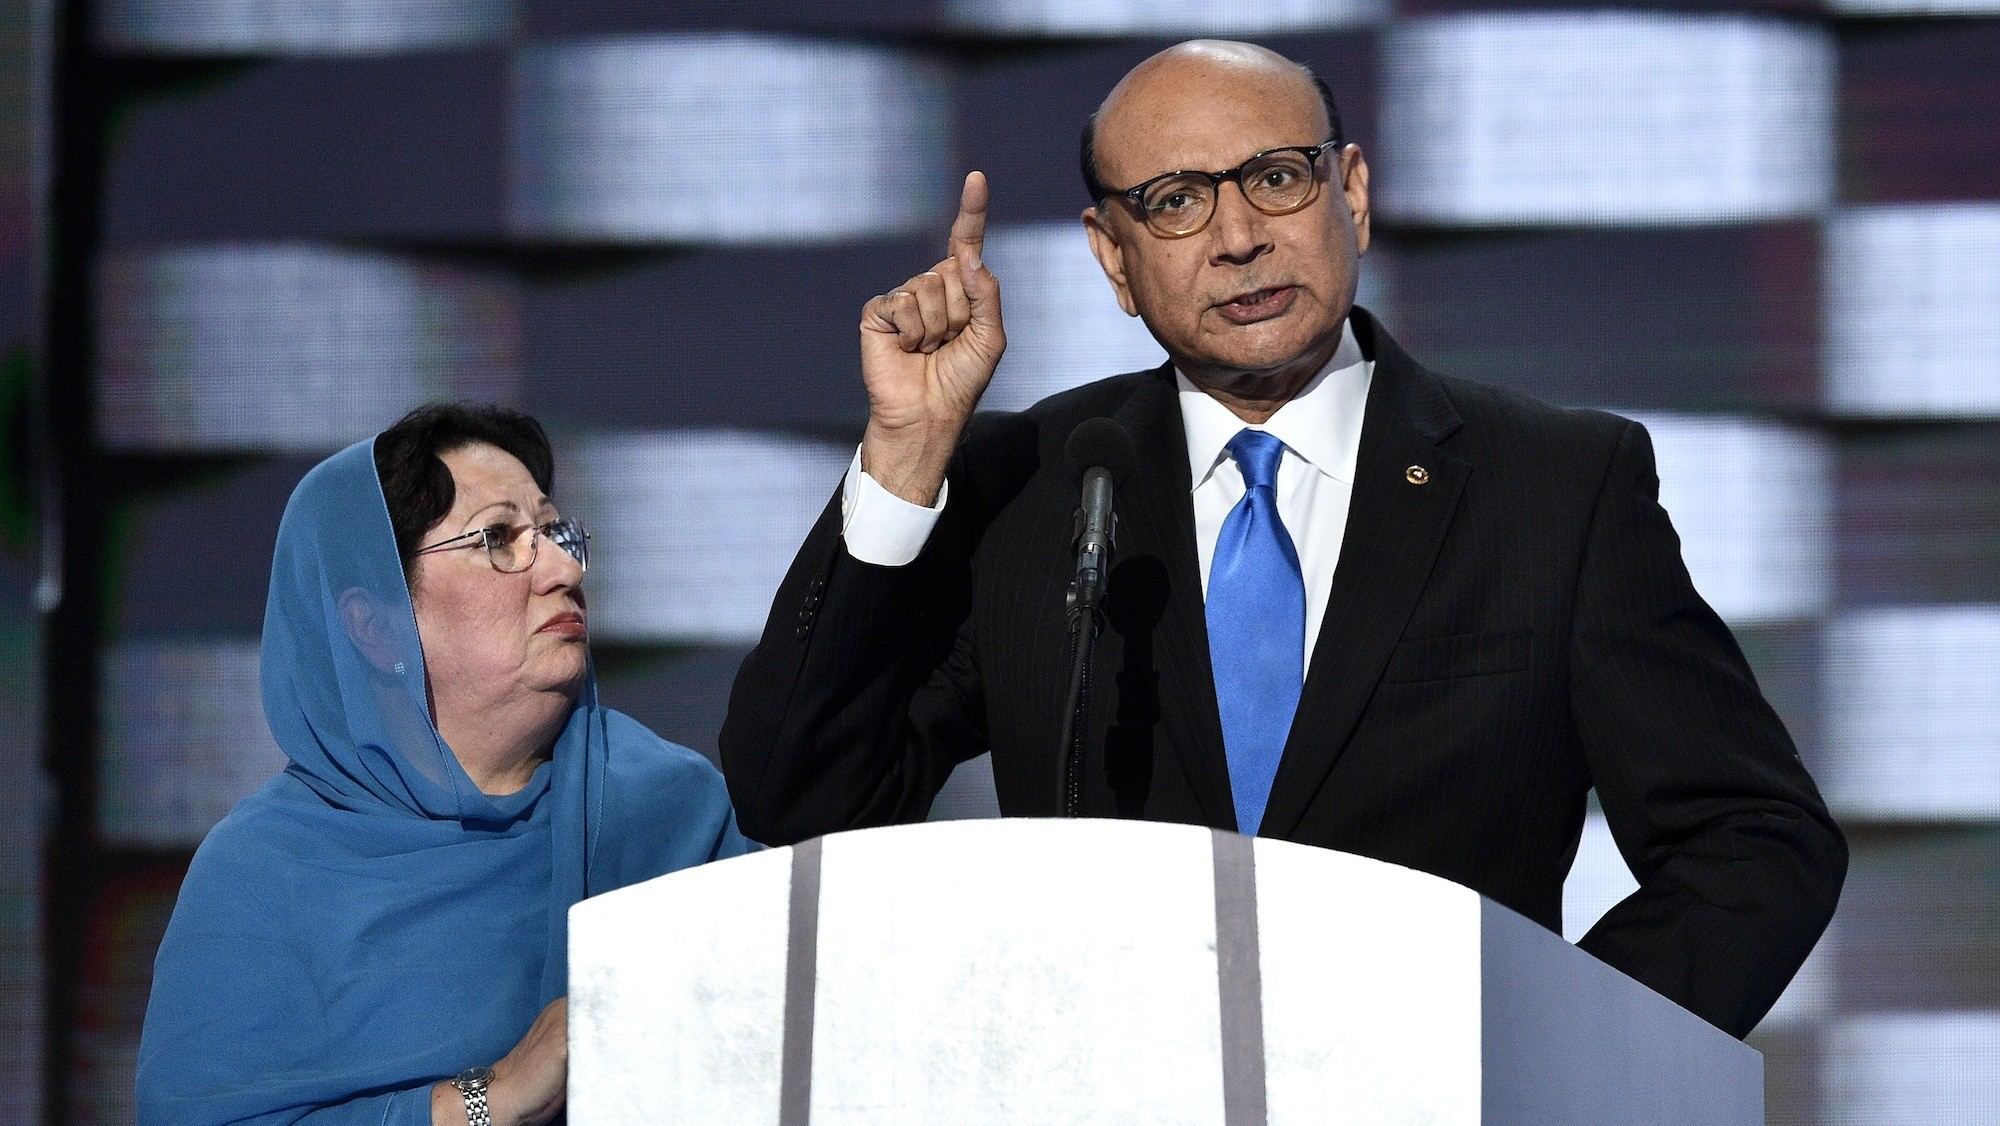 Trump says 'I've made a lot of sacrifices' in response to Muslim father of slain US soldier